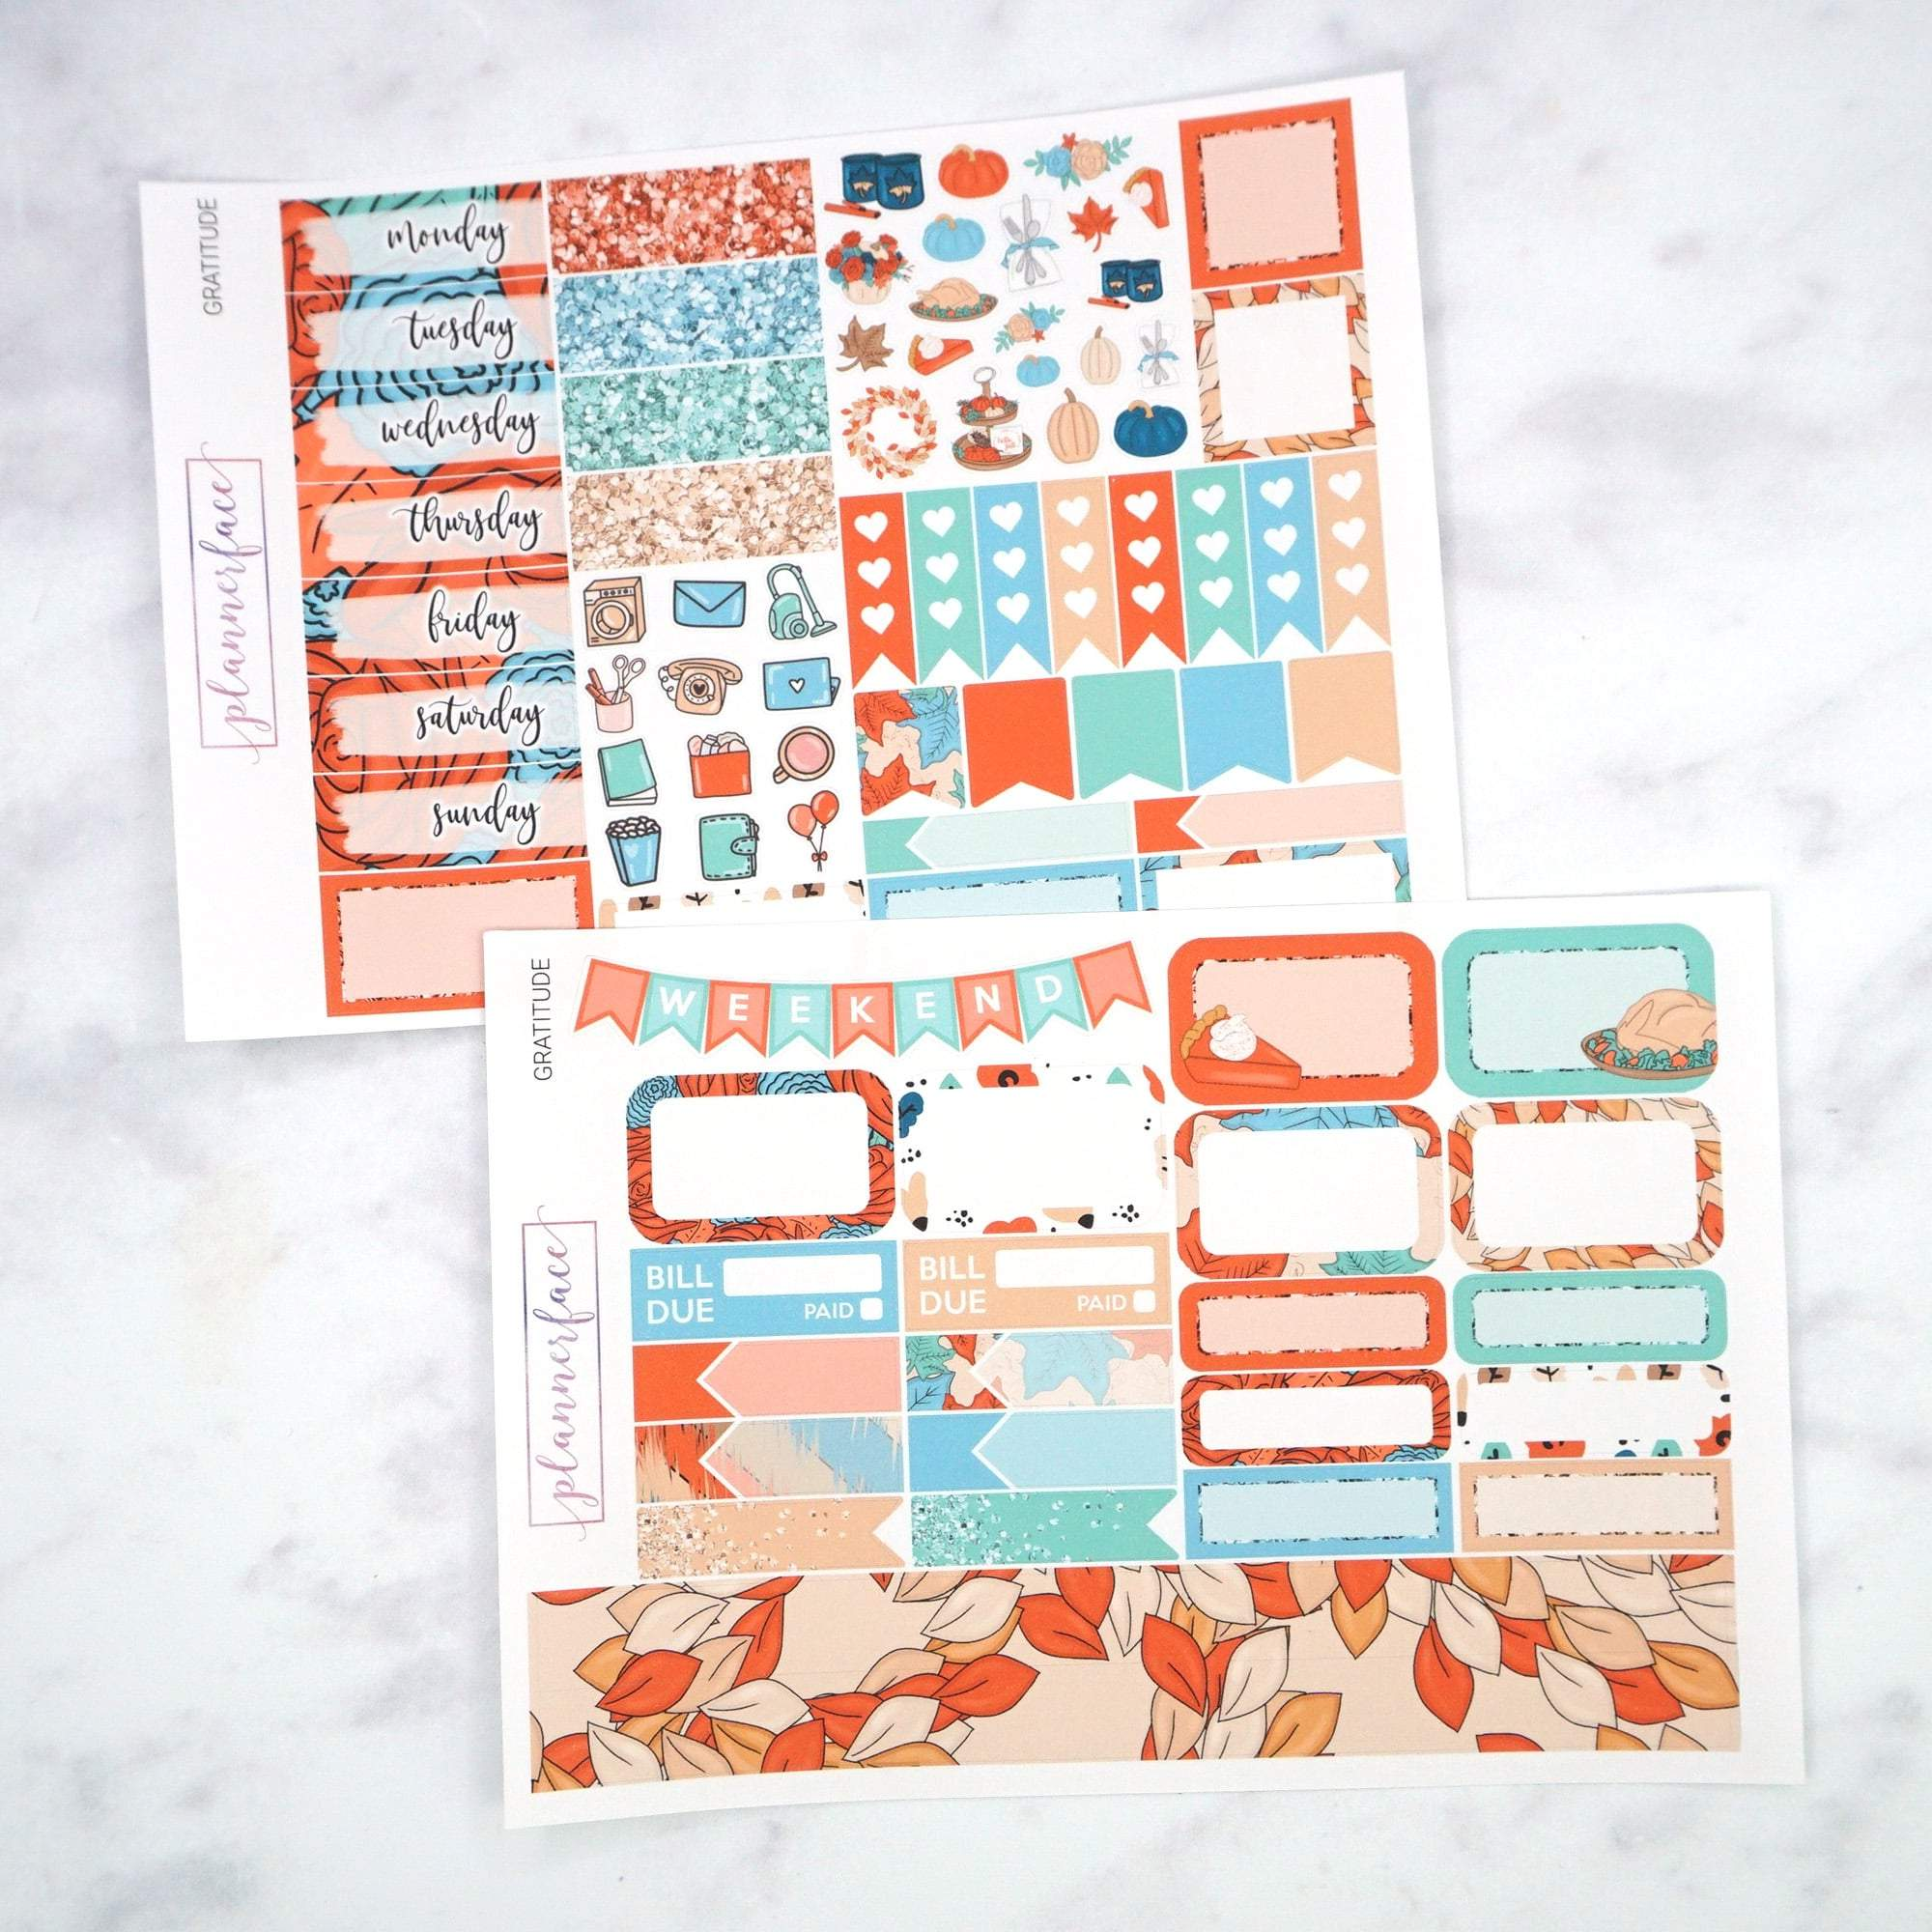 Plannerface Gratitude Mini Kit Planner Stickers